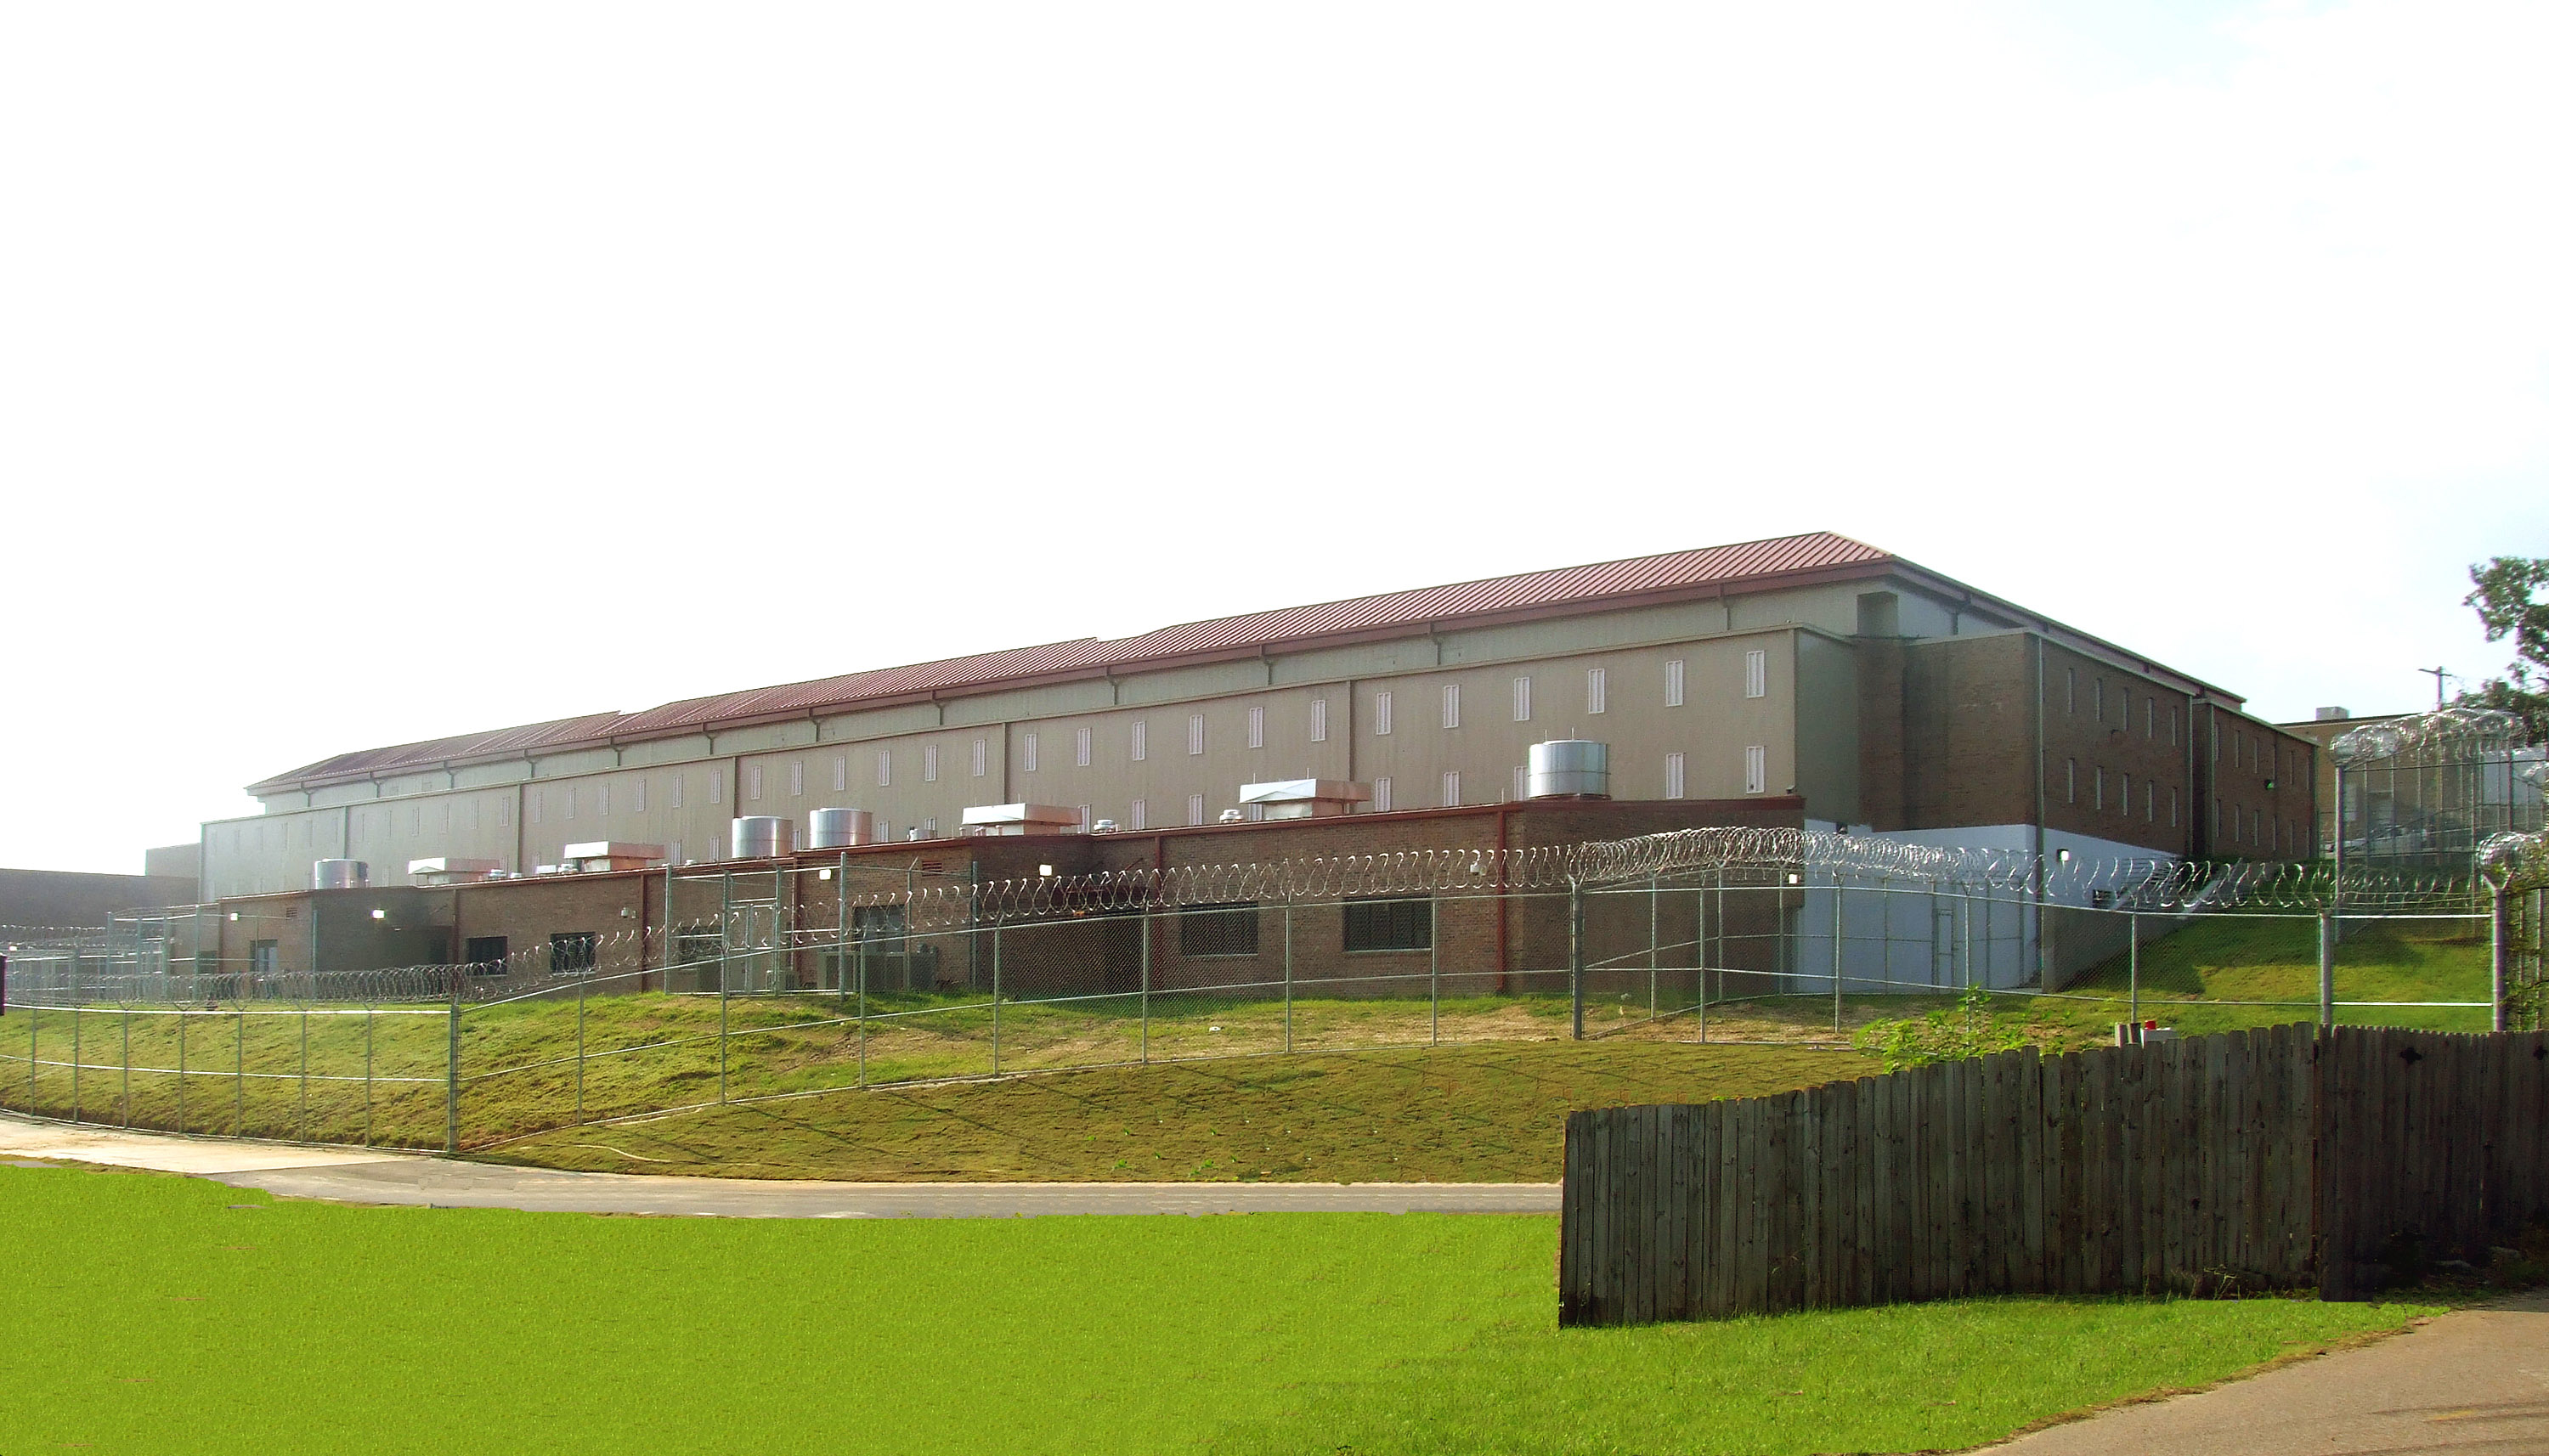 Rankin County Jail Additions